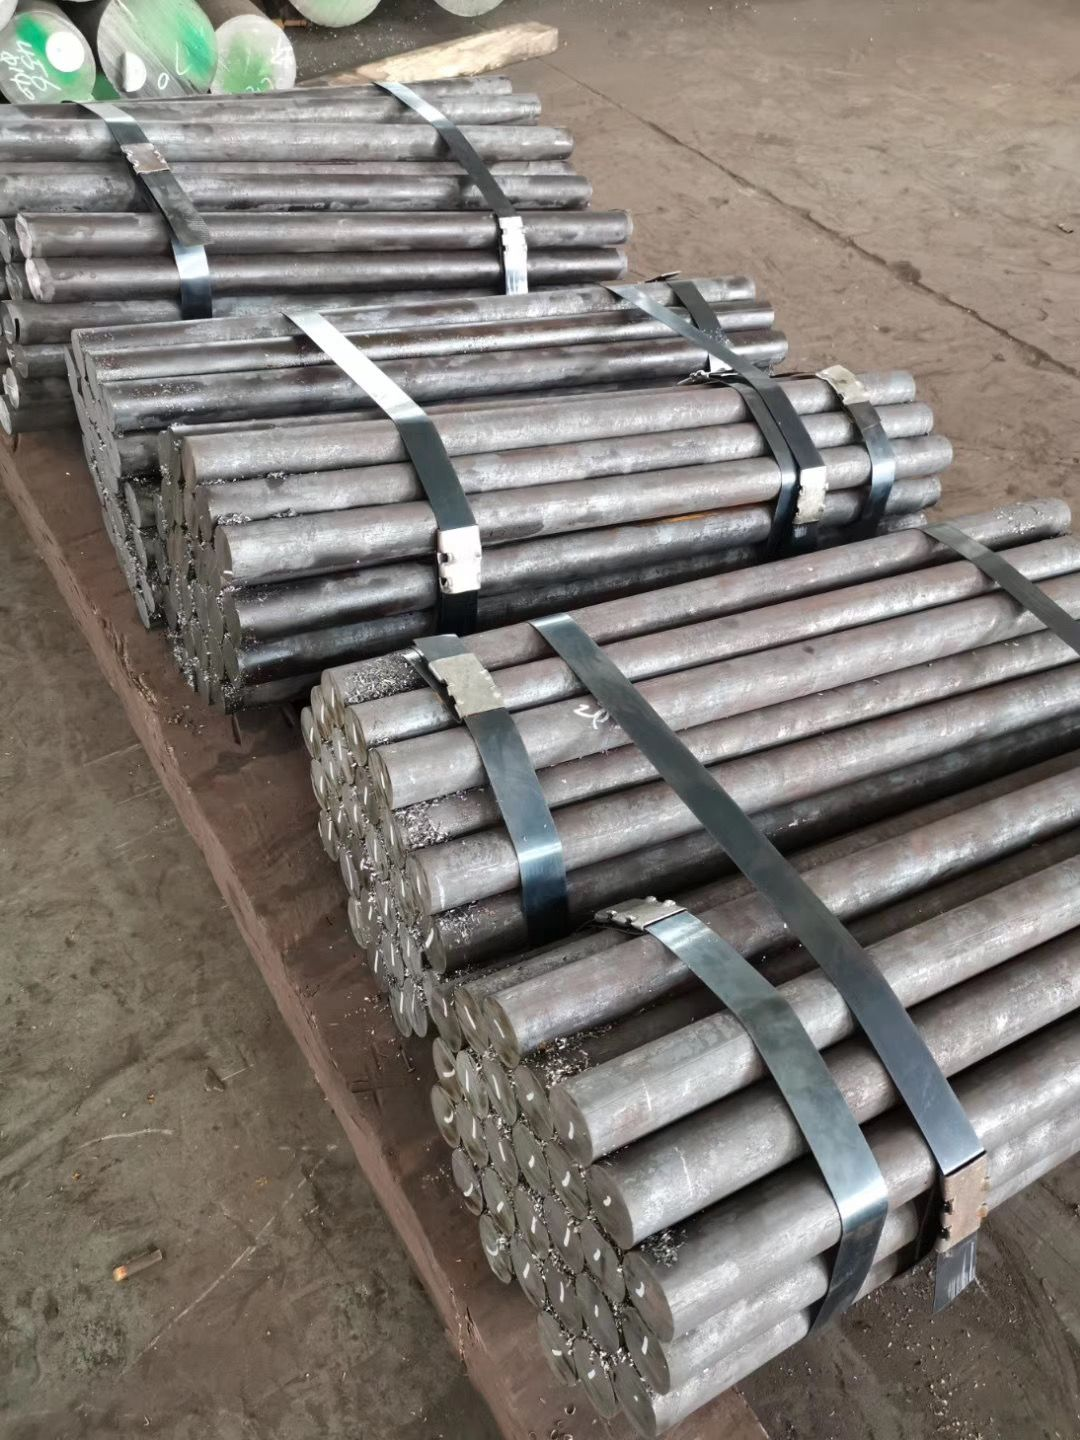 We Are A Professional Supplier And Manufacturer Of Seamless 316 Stainless Steel Pipes Welde Stainless Steel Tubing Stainless Steel Plate Stainless Steel Sheet